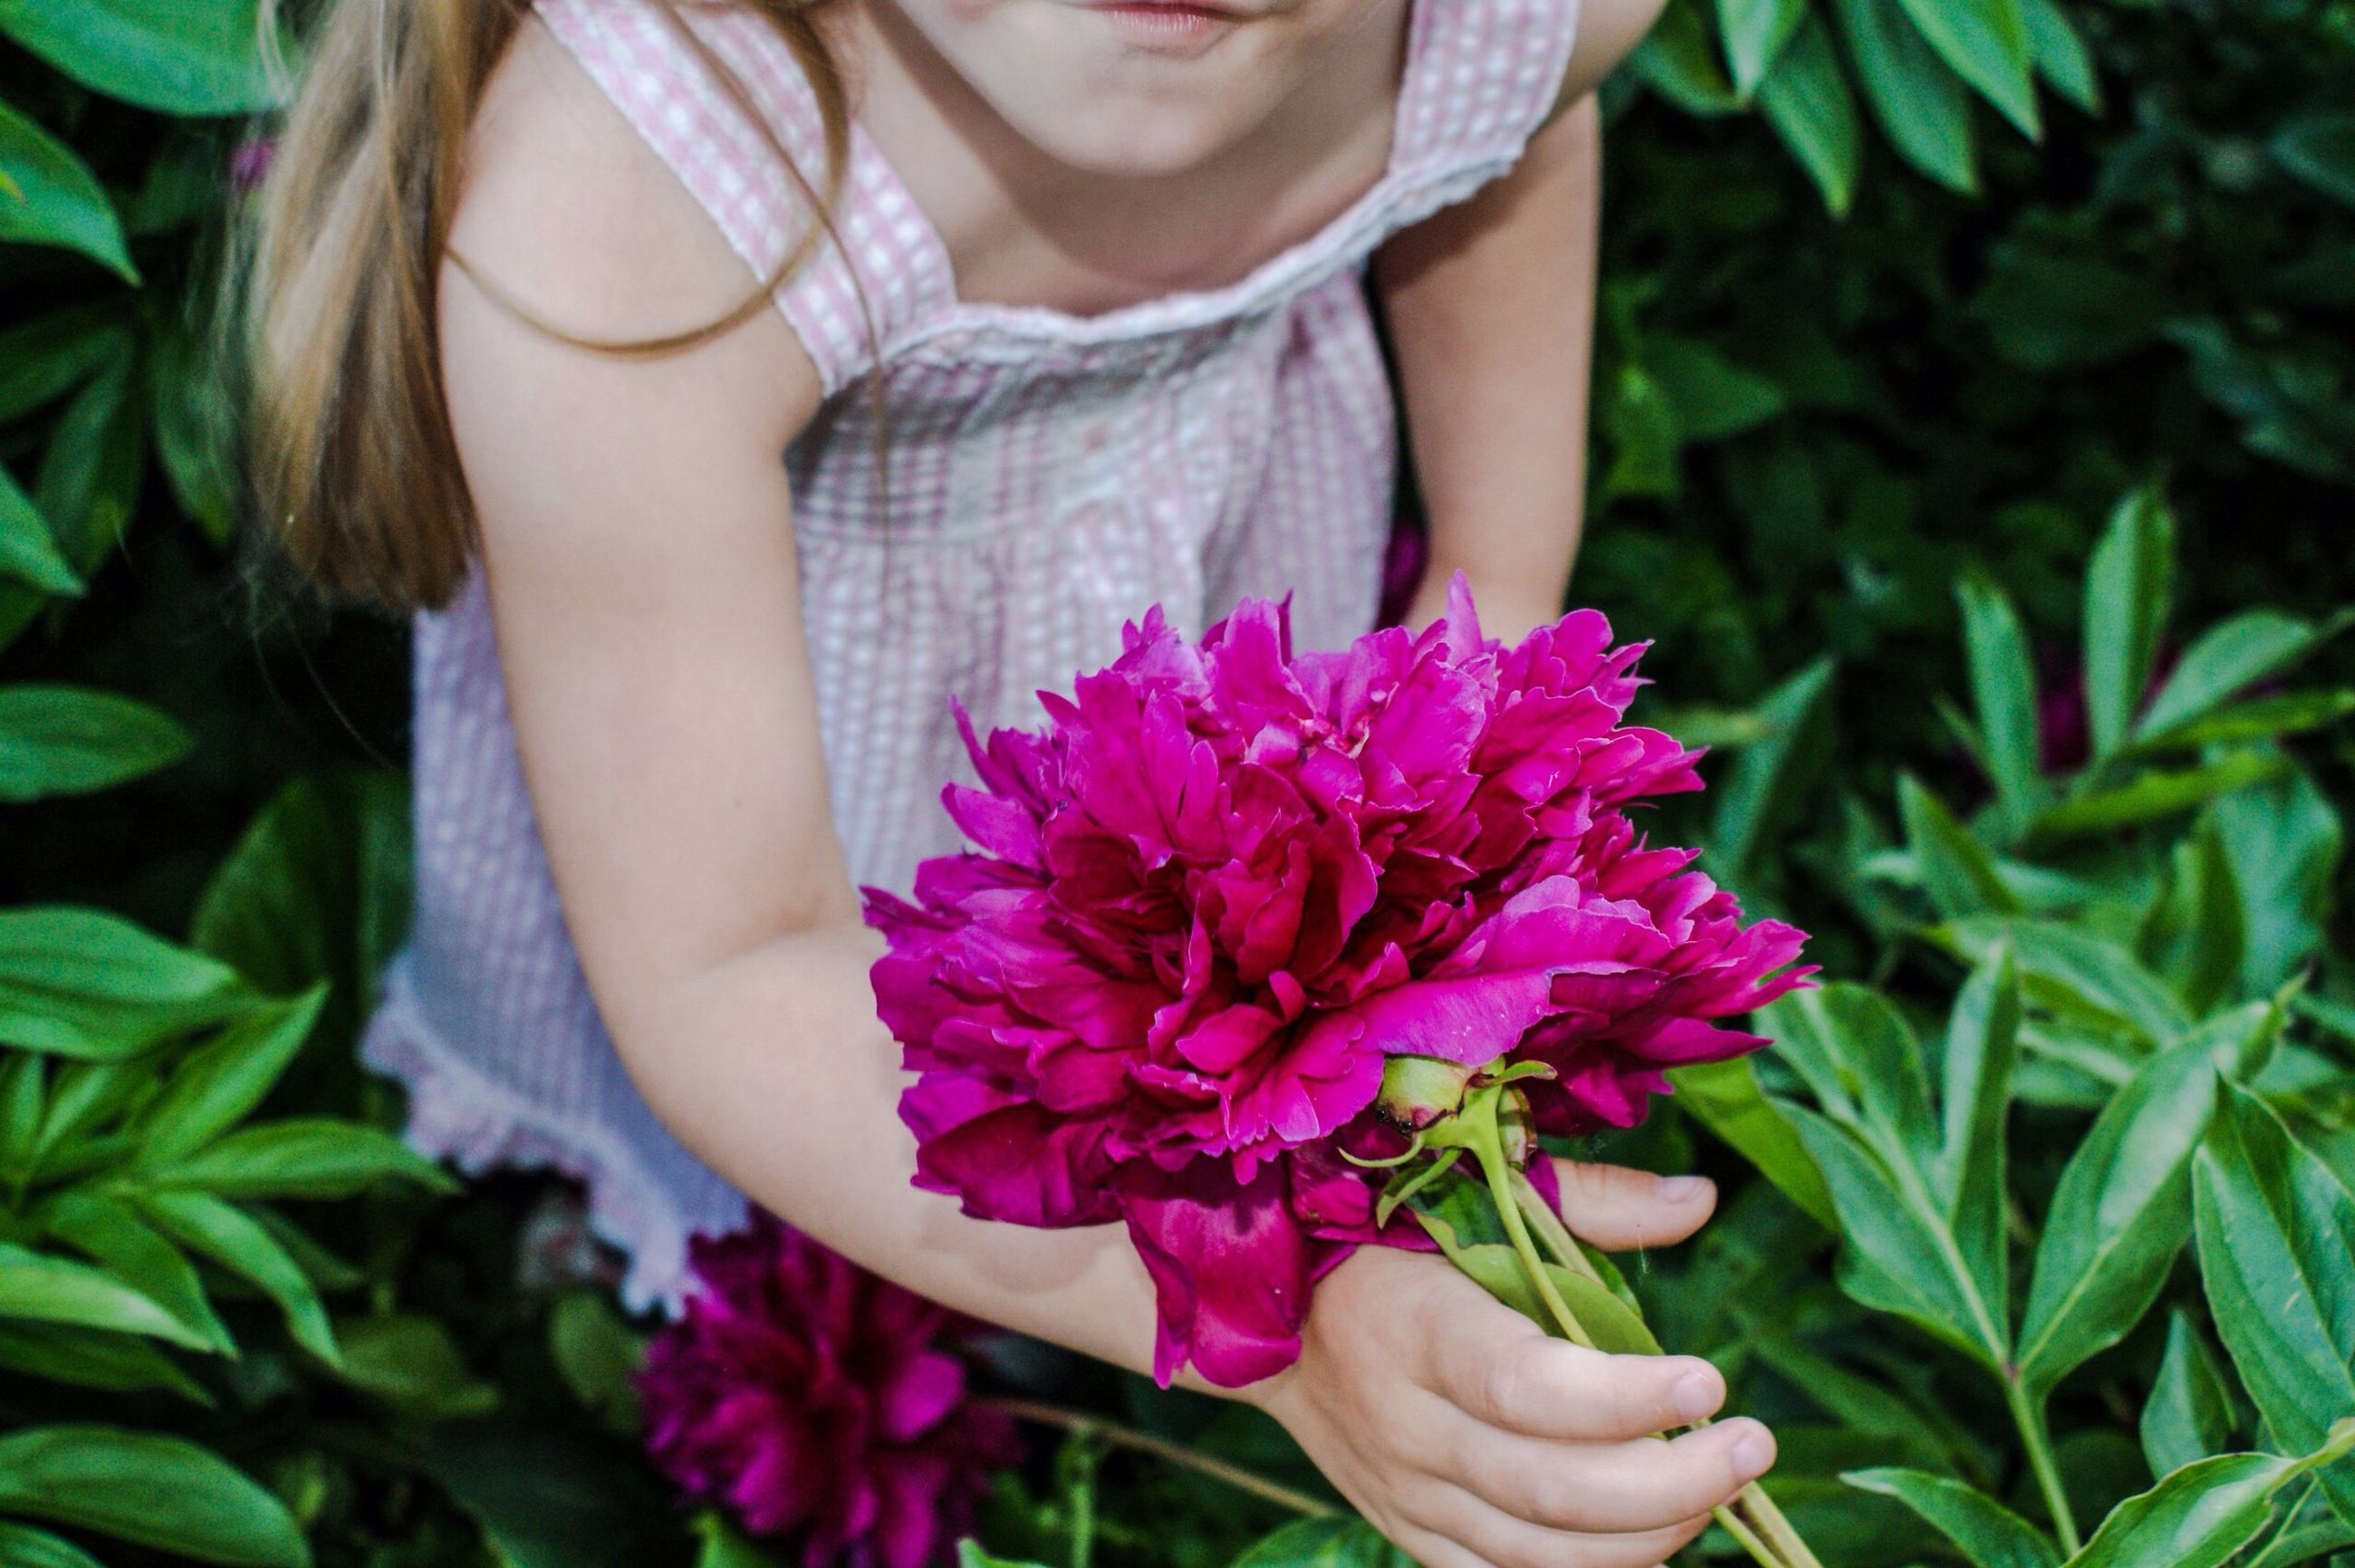 flower, freshness, midsection, front view, holding, petal, leaf, fragility, close-up, lifestyles, beauty in nature, young women, nature, person, casual clothing, young adult, focus on foreground, pink color, plant, pink, flower head, growth, long hair, bouquet, outdoors